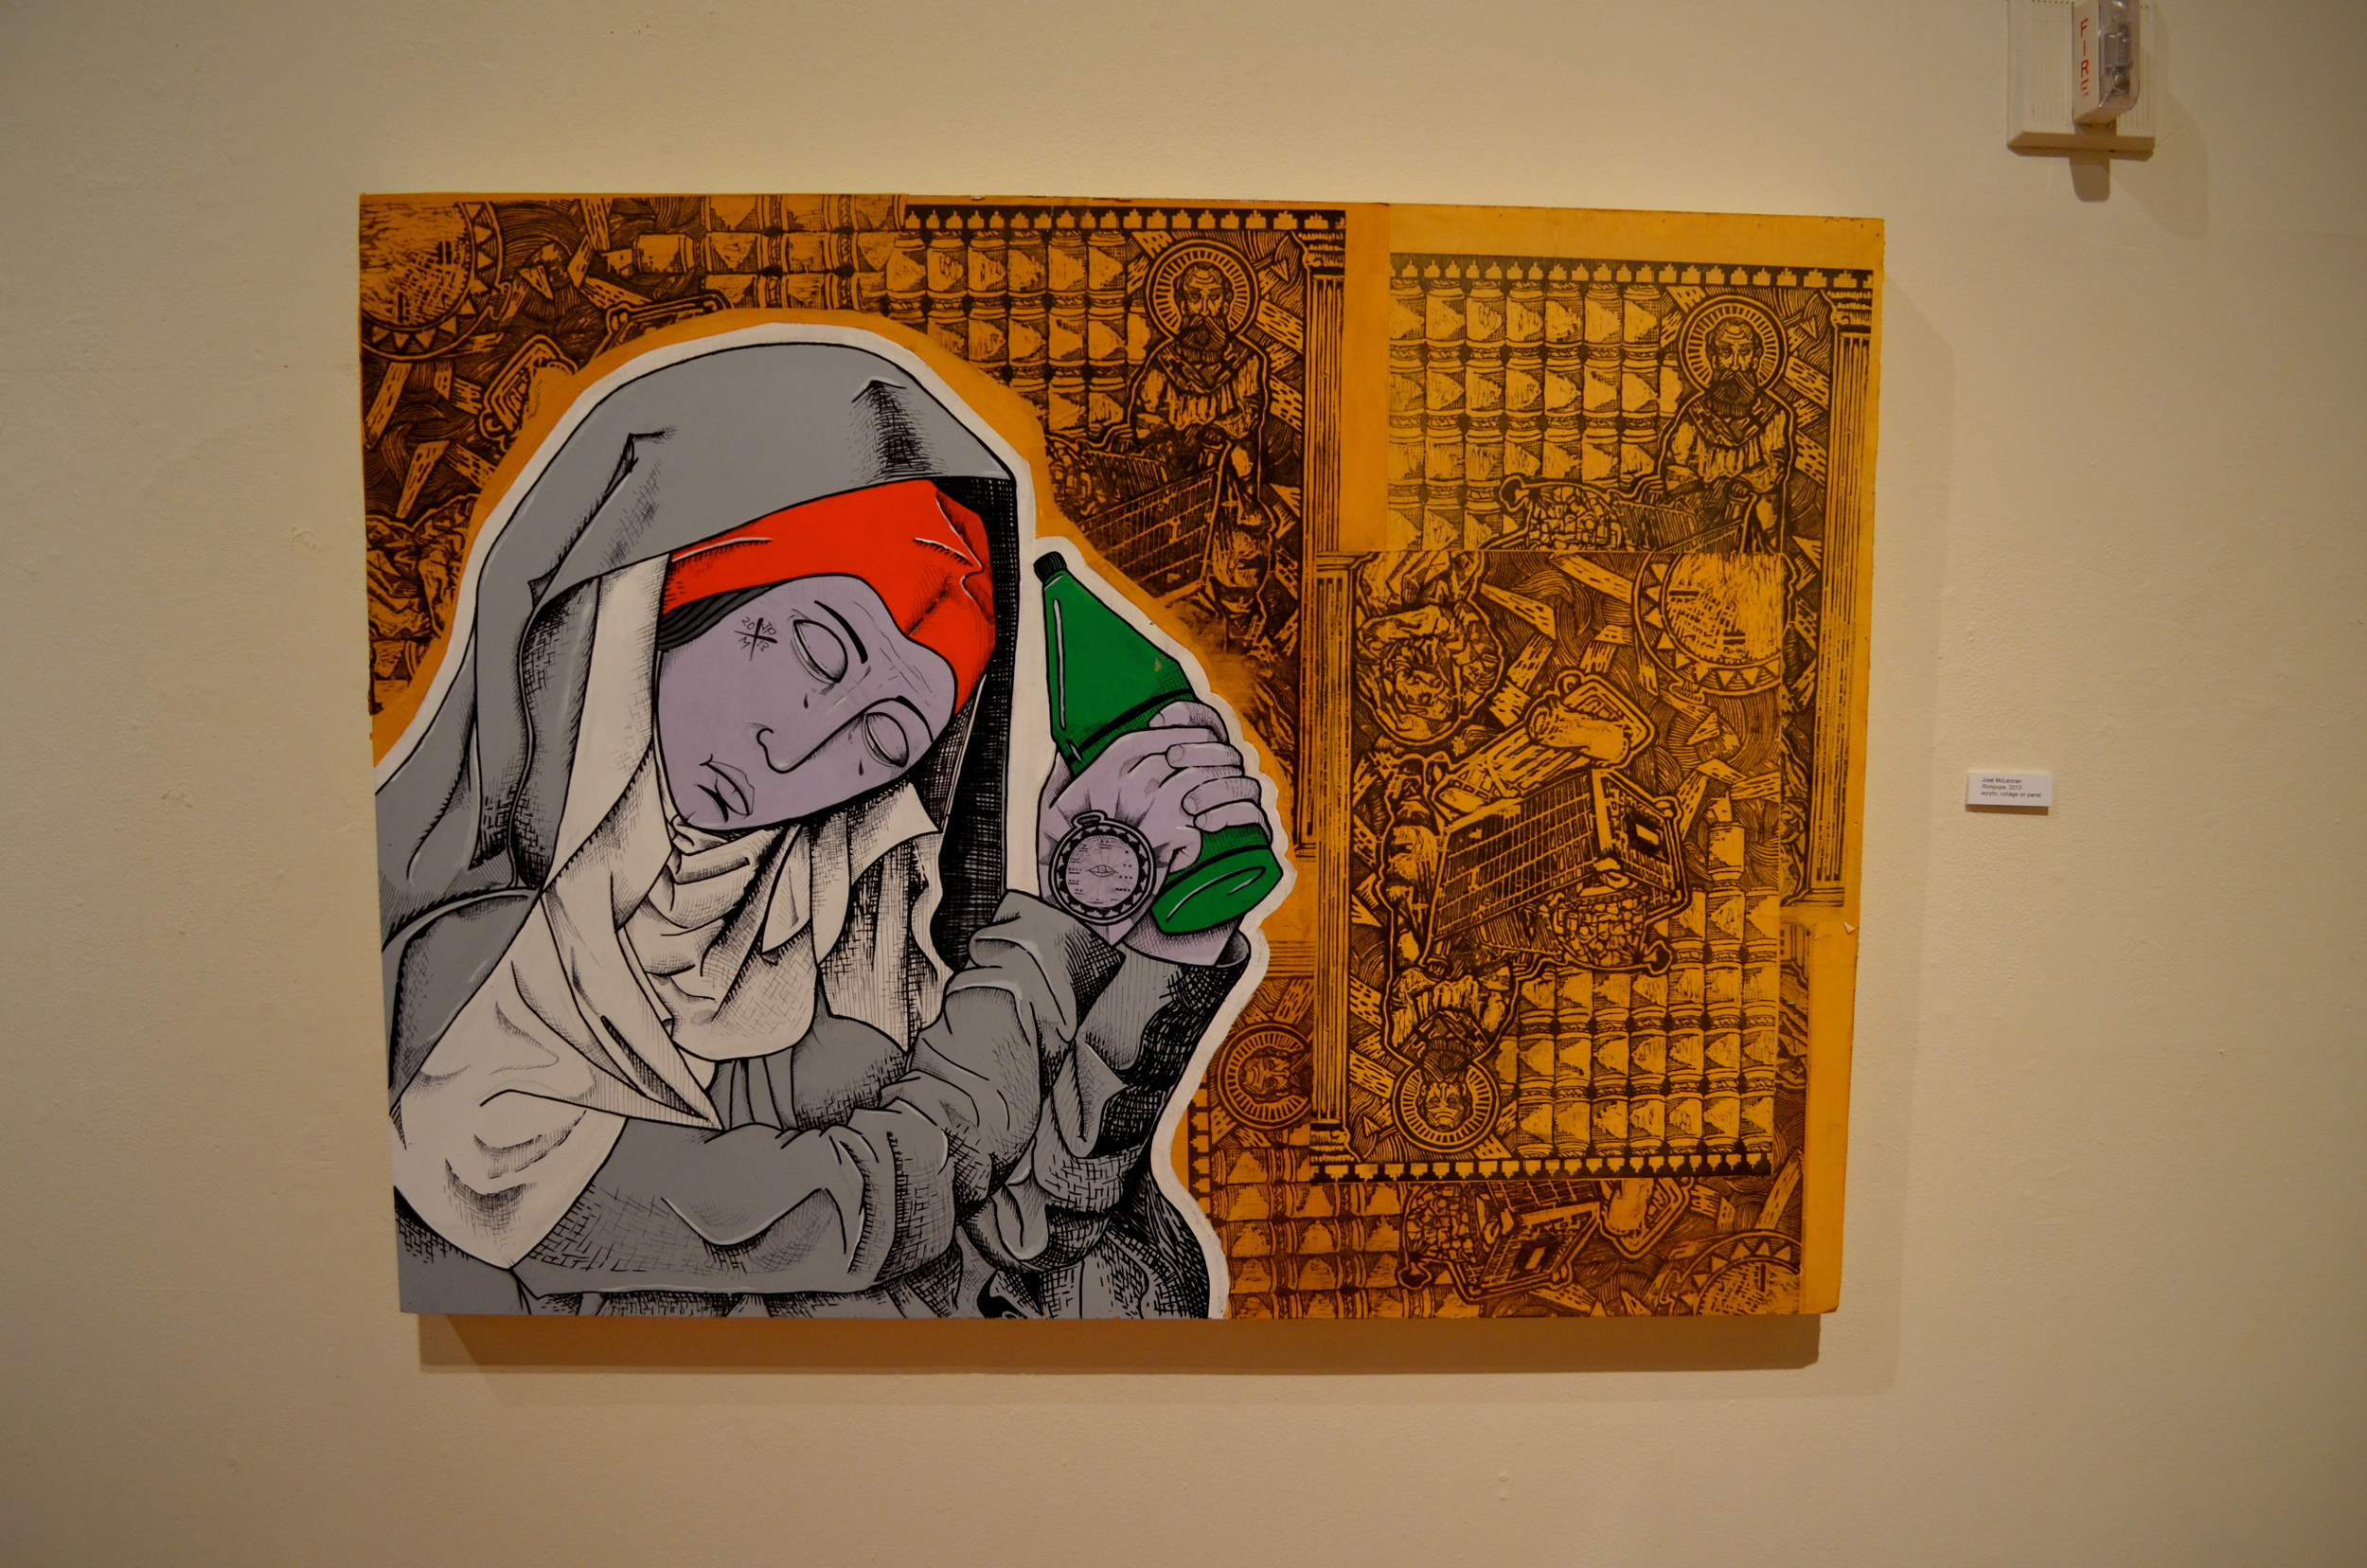 STAR // Cara Fuqua   Artist Jose McLennan incorporates religious imagery in his works, focusing on nuns and priests in the foregrounds, and chaos in the backgrounds.